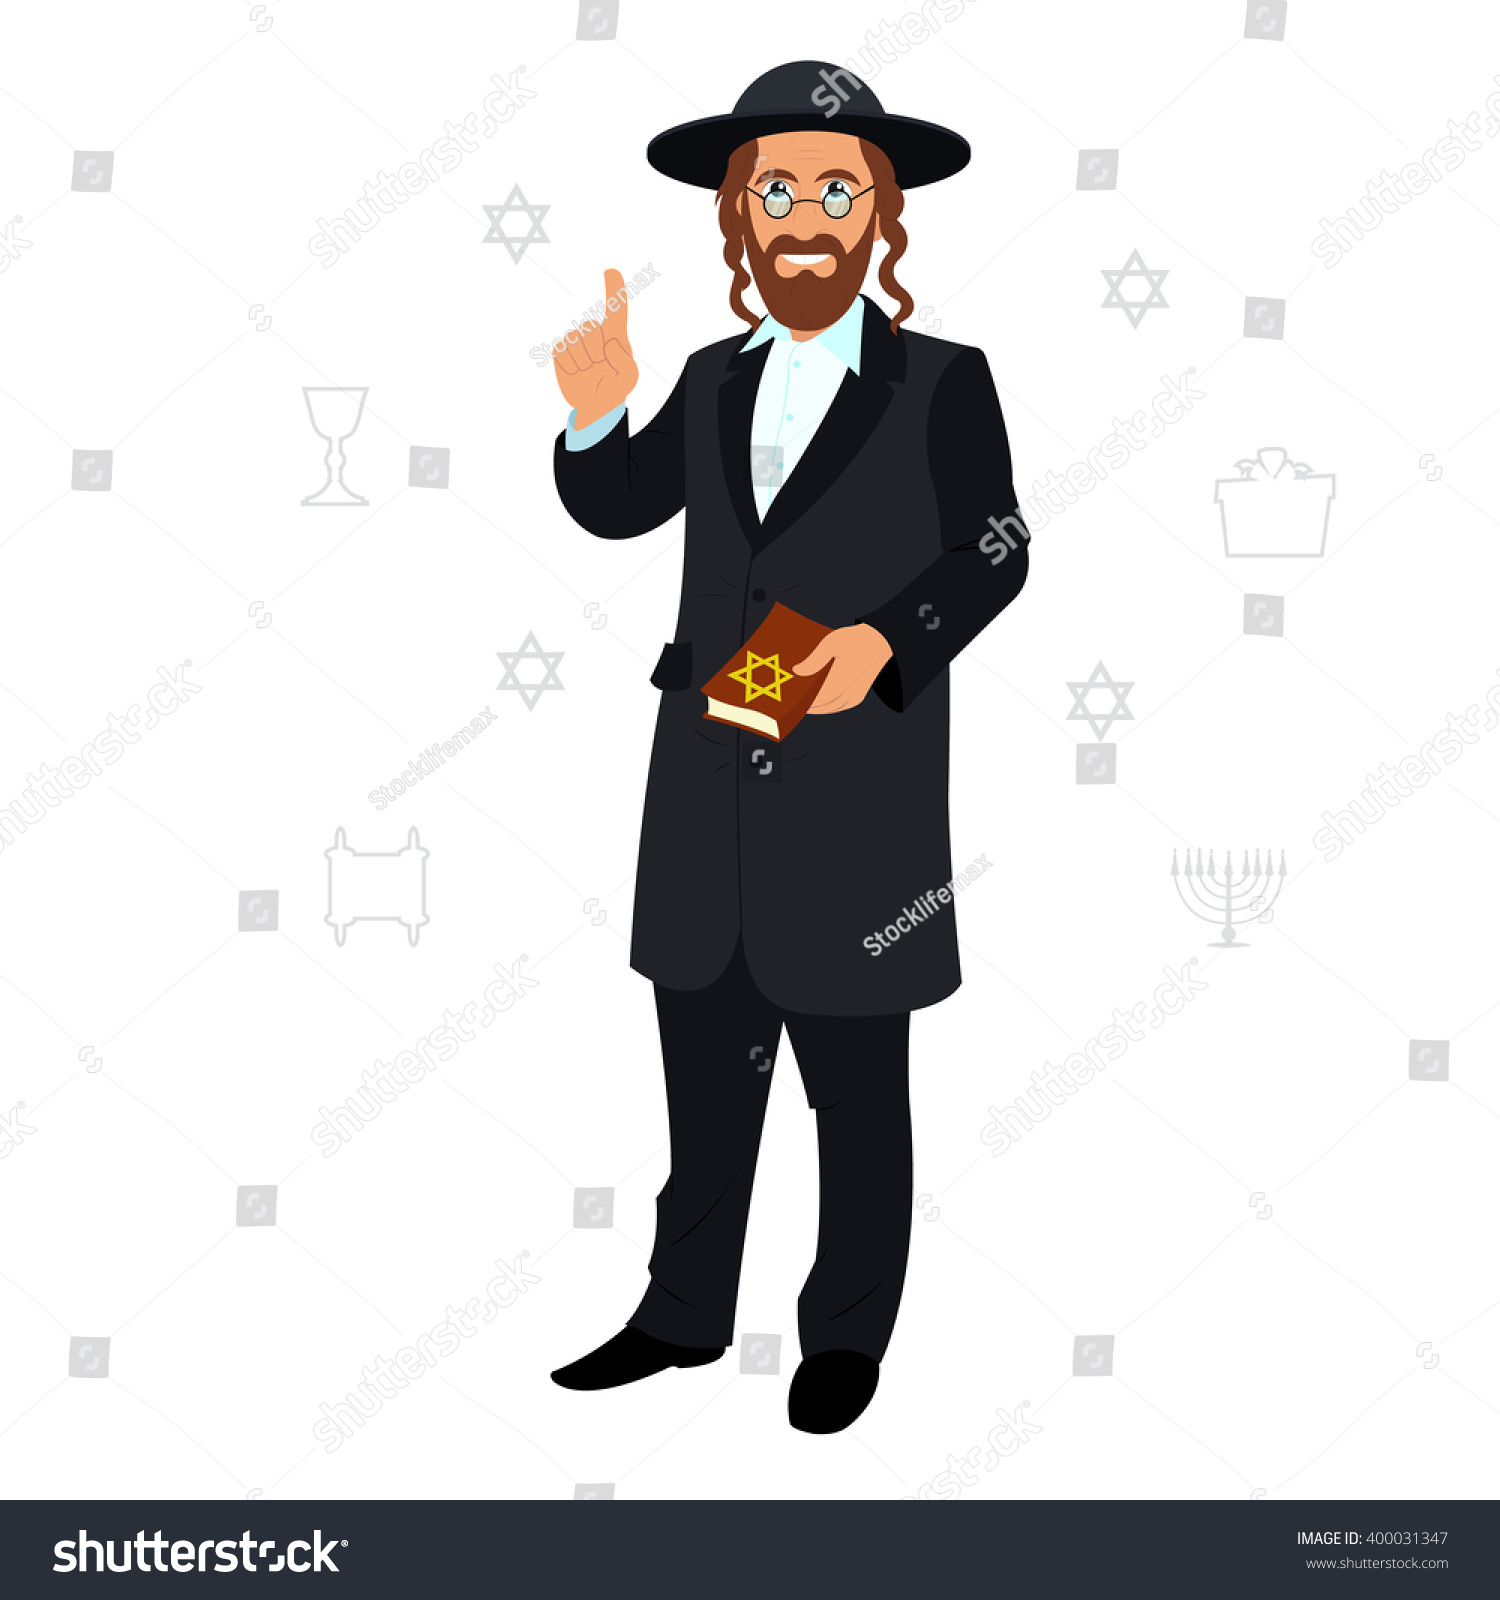 jewish single men in ona The jewish people account for less than one percent of the world's on this page is a list of resources to help jewish singles in miami find friends.